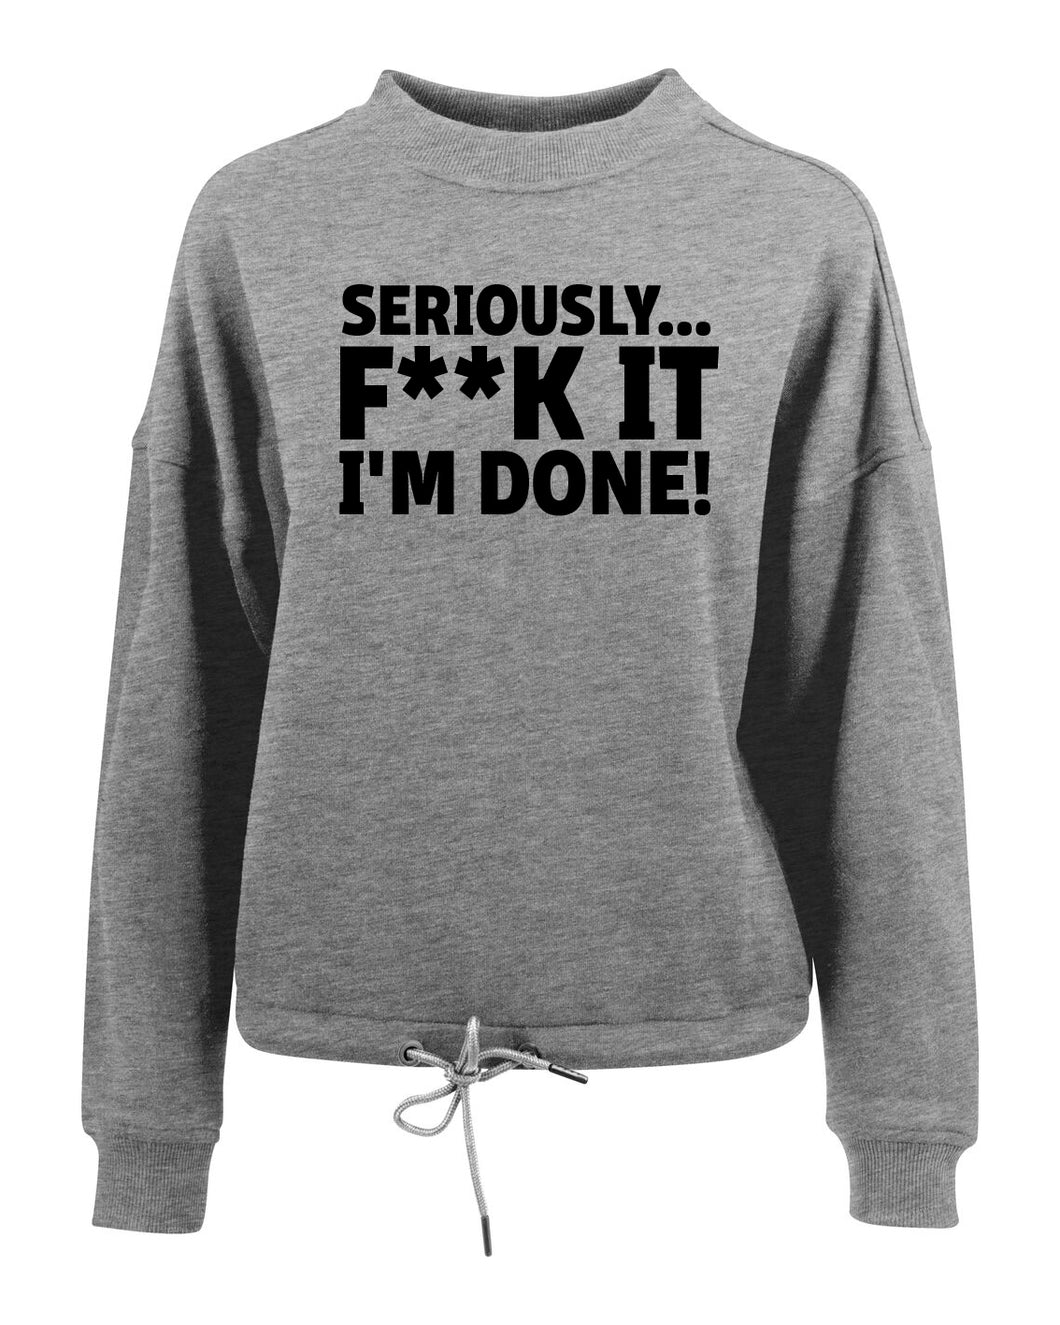 SERIOUSLY... F**K IT I'M DONE! - Women's oversize crew neck sweatshirt - SoreTodayStrongTomorrow